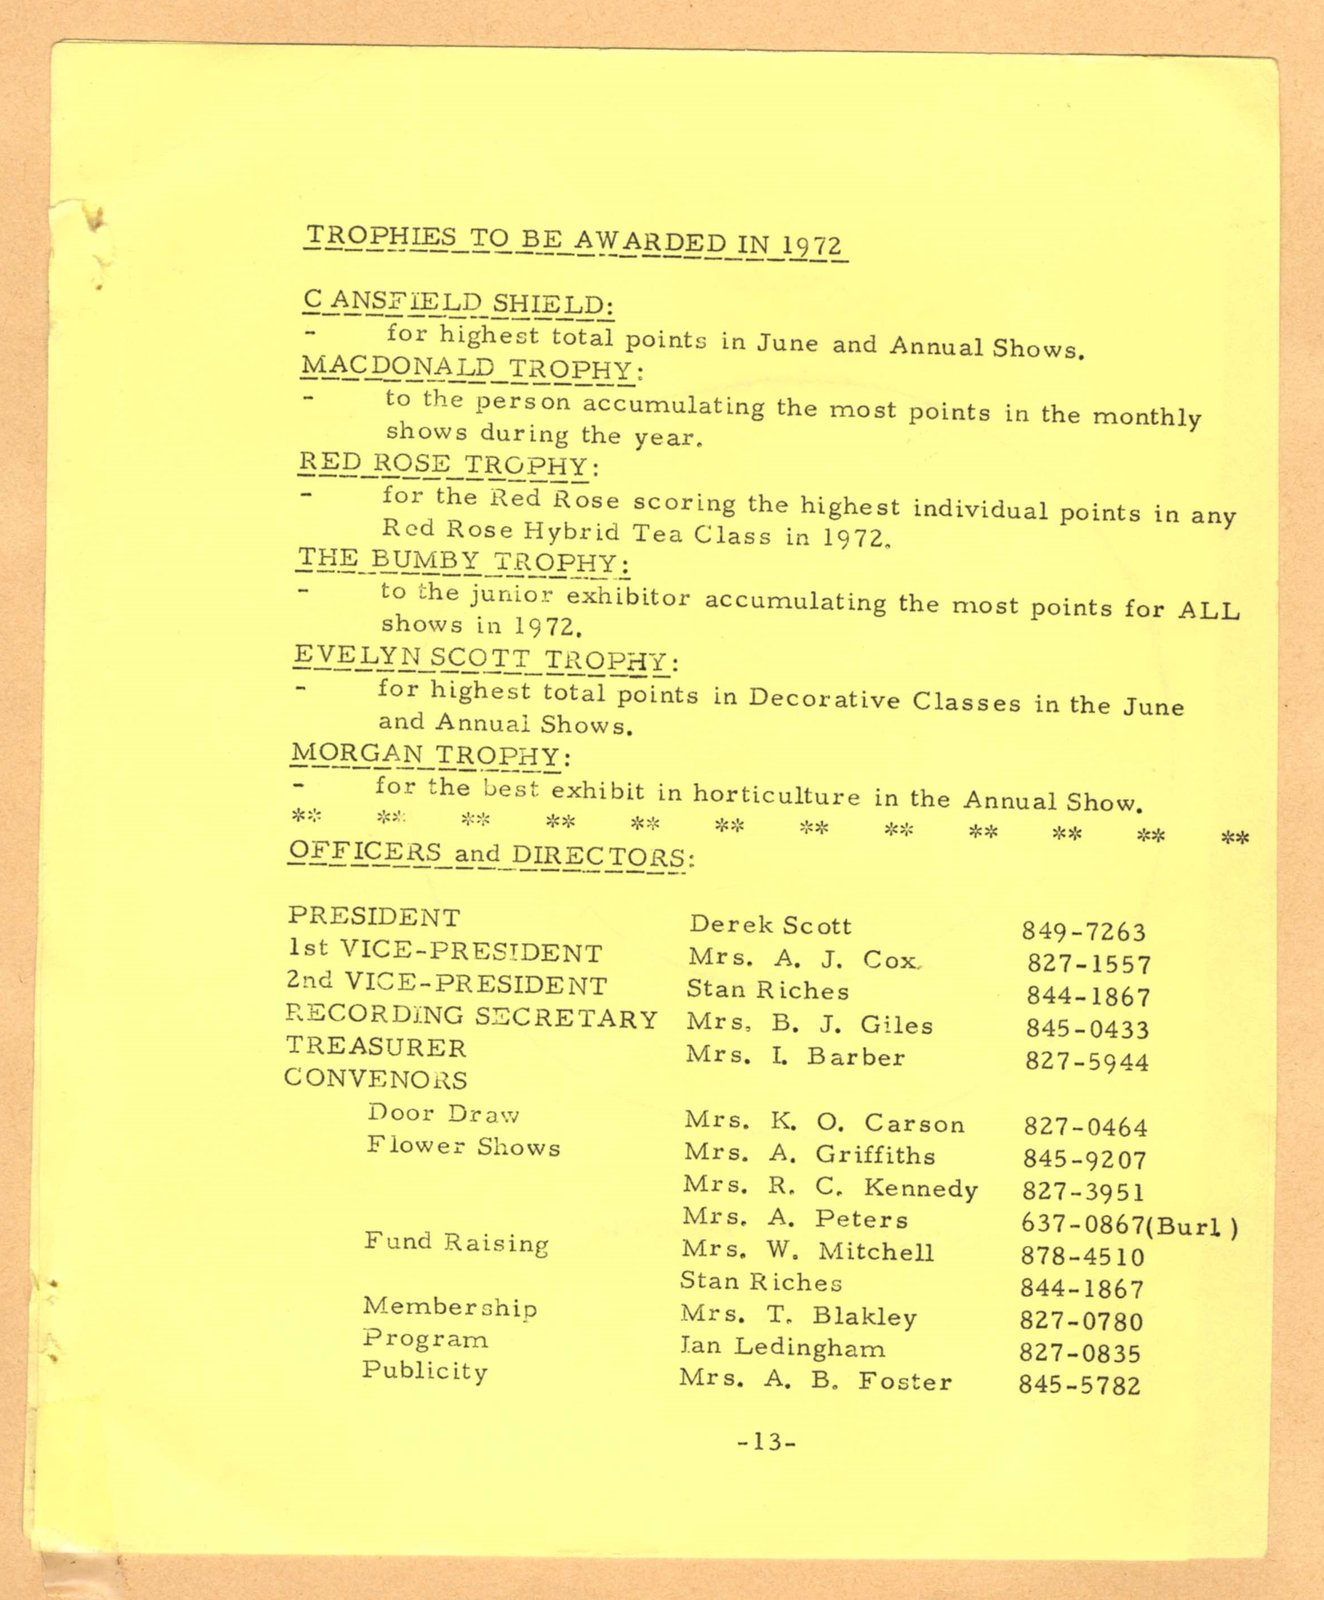 Bronte Horticultural Society 1972 Trophy List